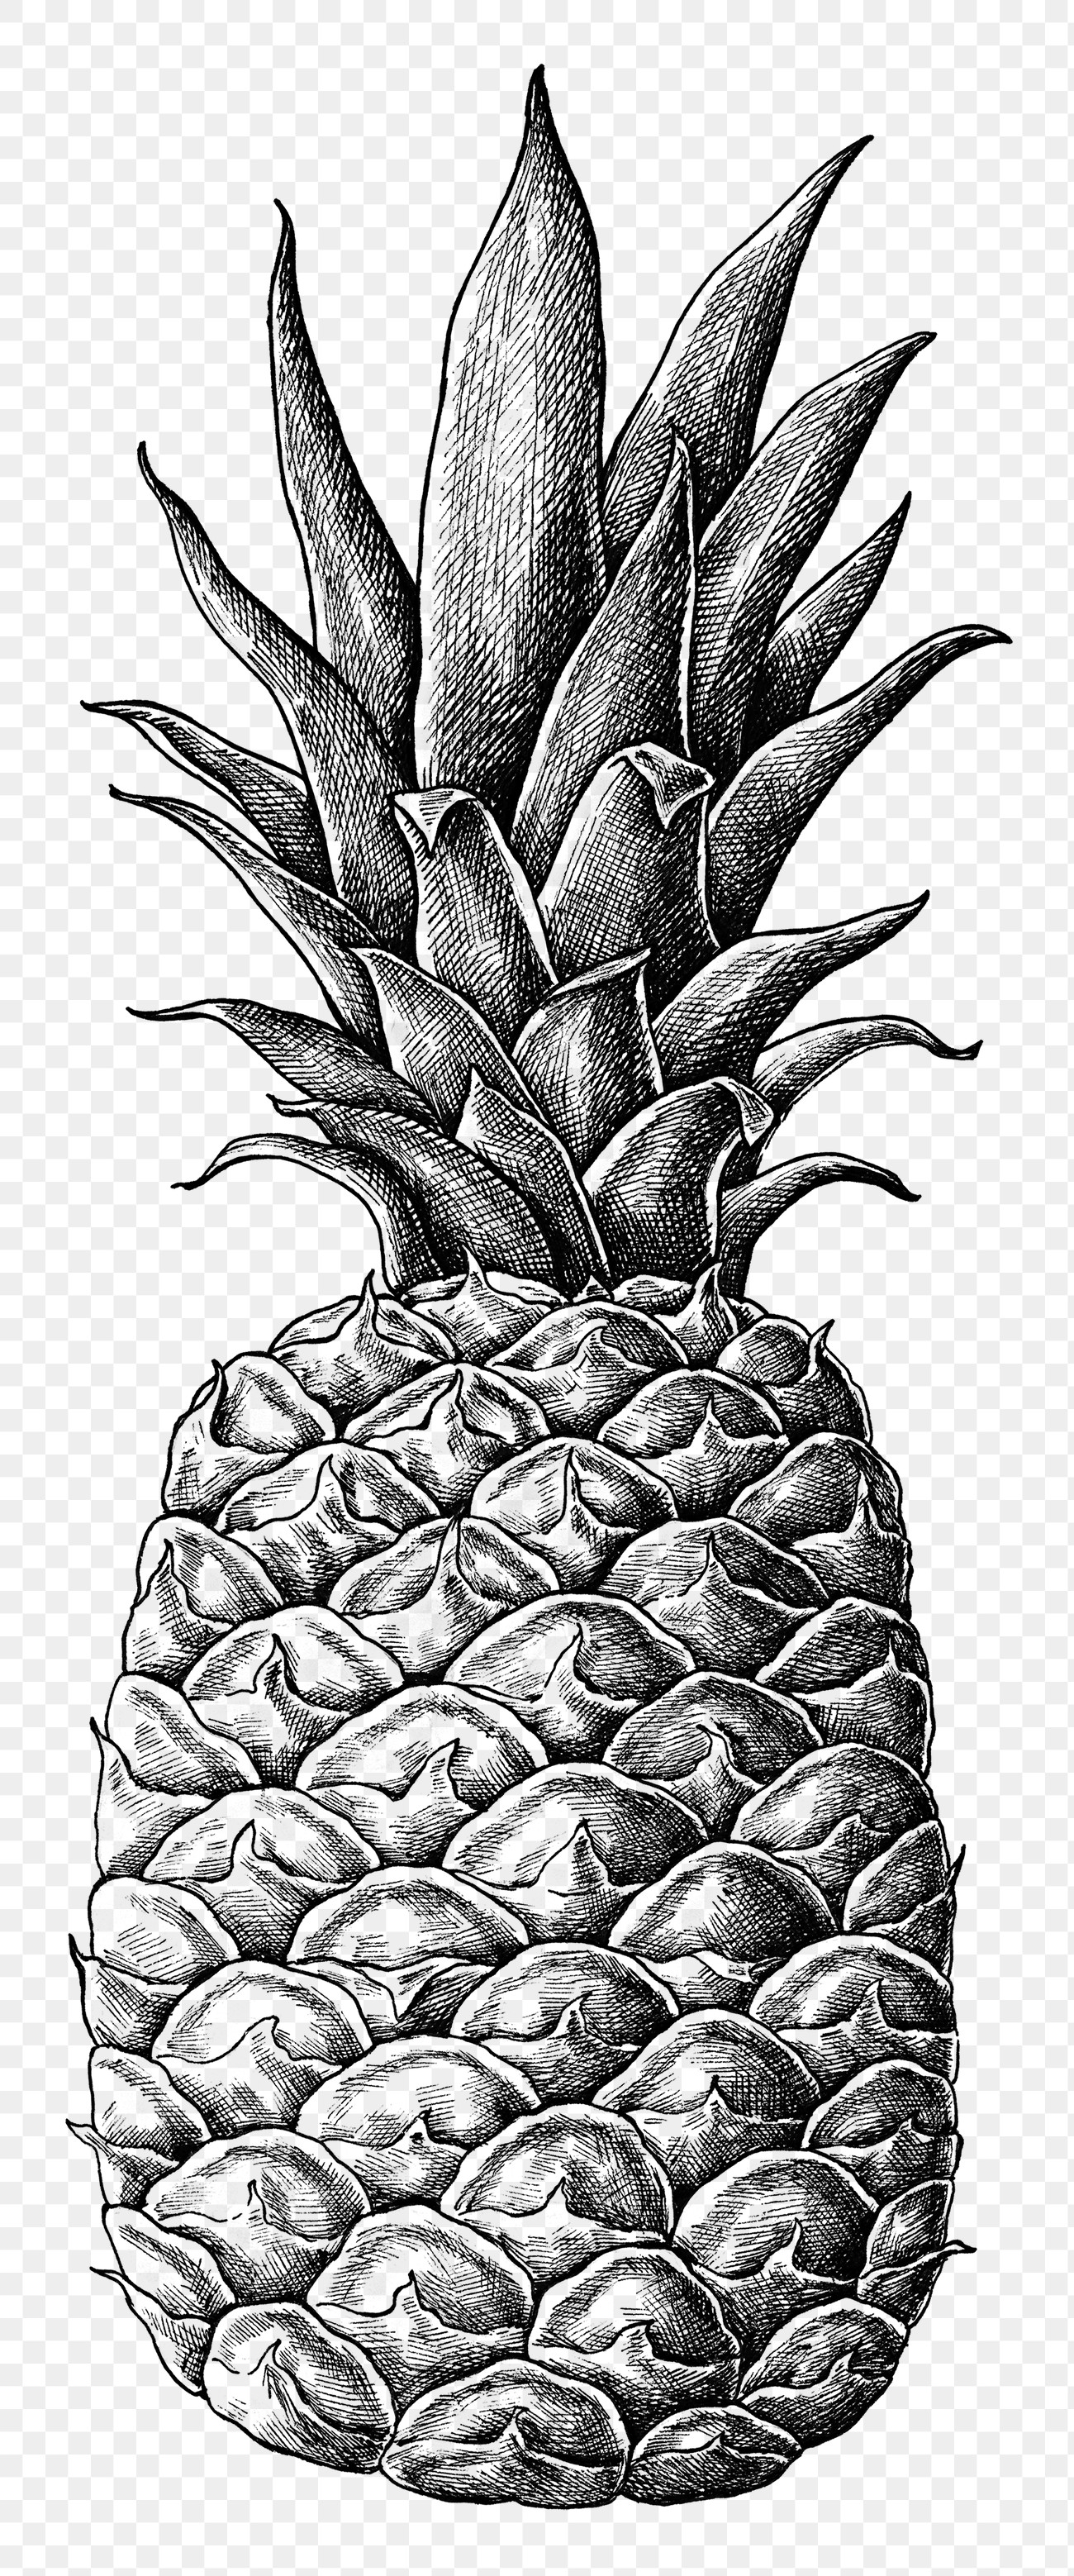 pineapple drawing pineapple line drawing at paintingvalleycom explore drawing pineapple